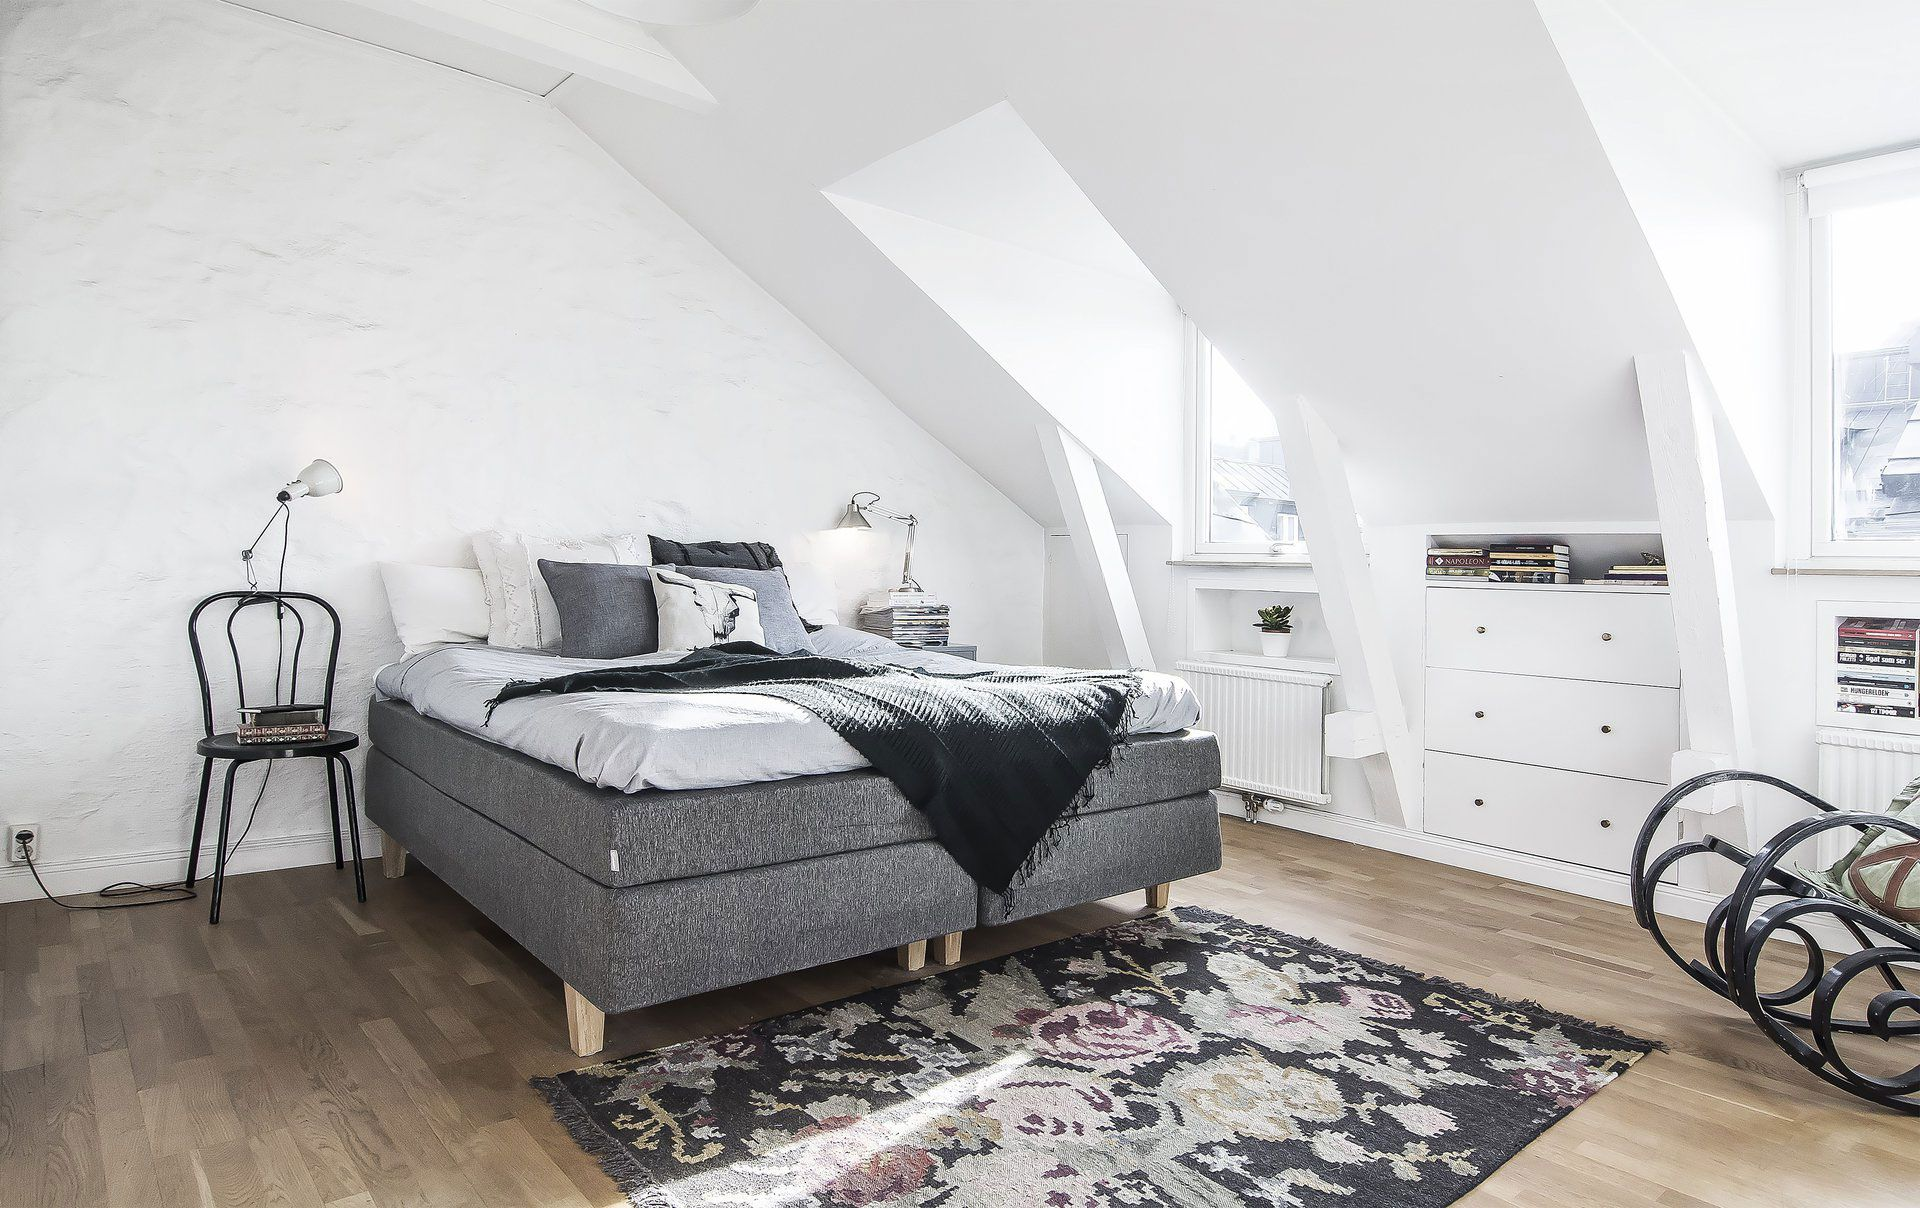 Home-office-schlafzimmer-design-ideen a relaxing space under the roof   interior design  pinterest